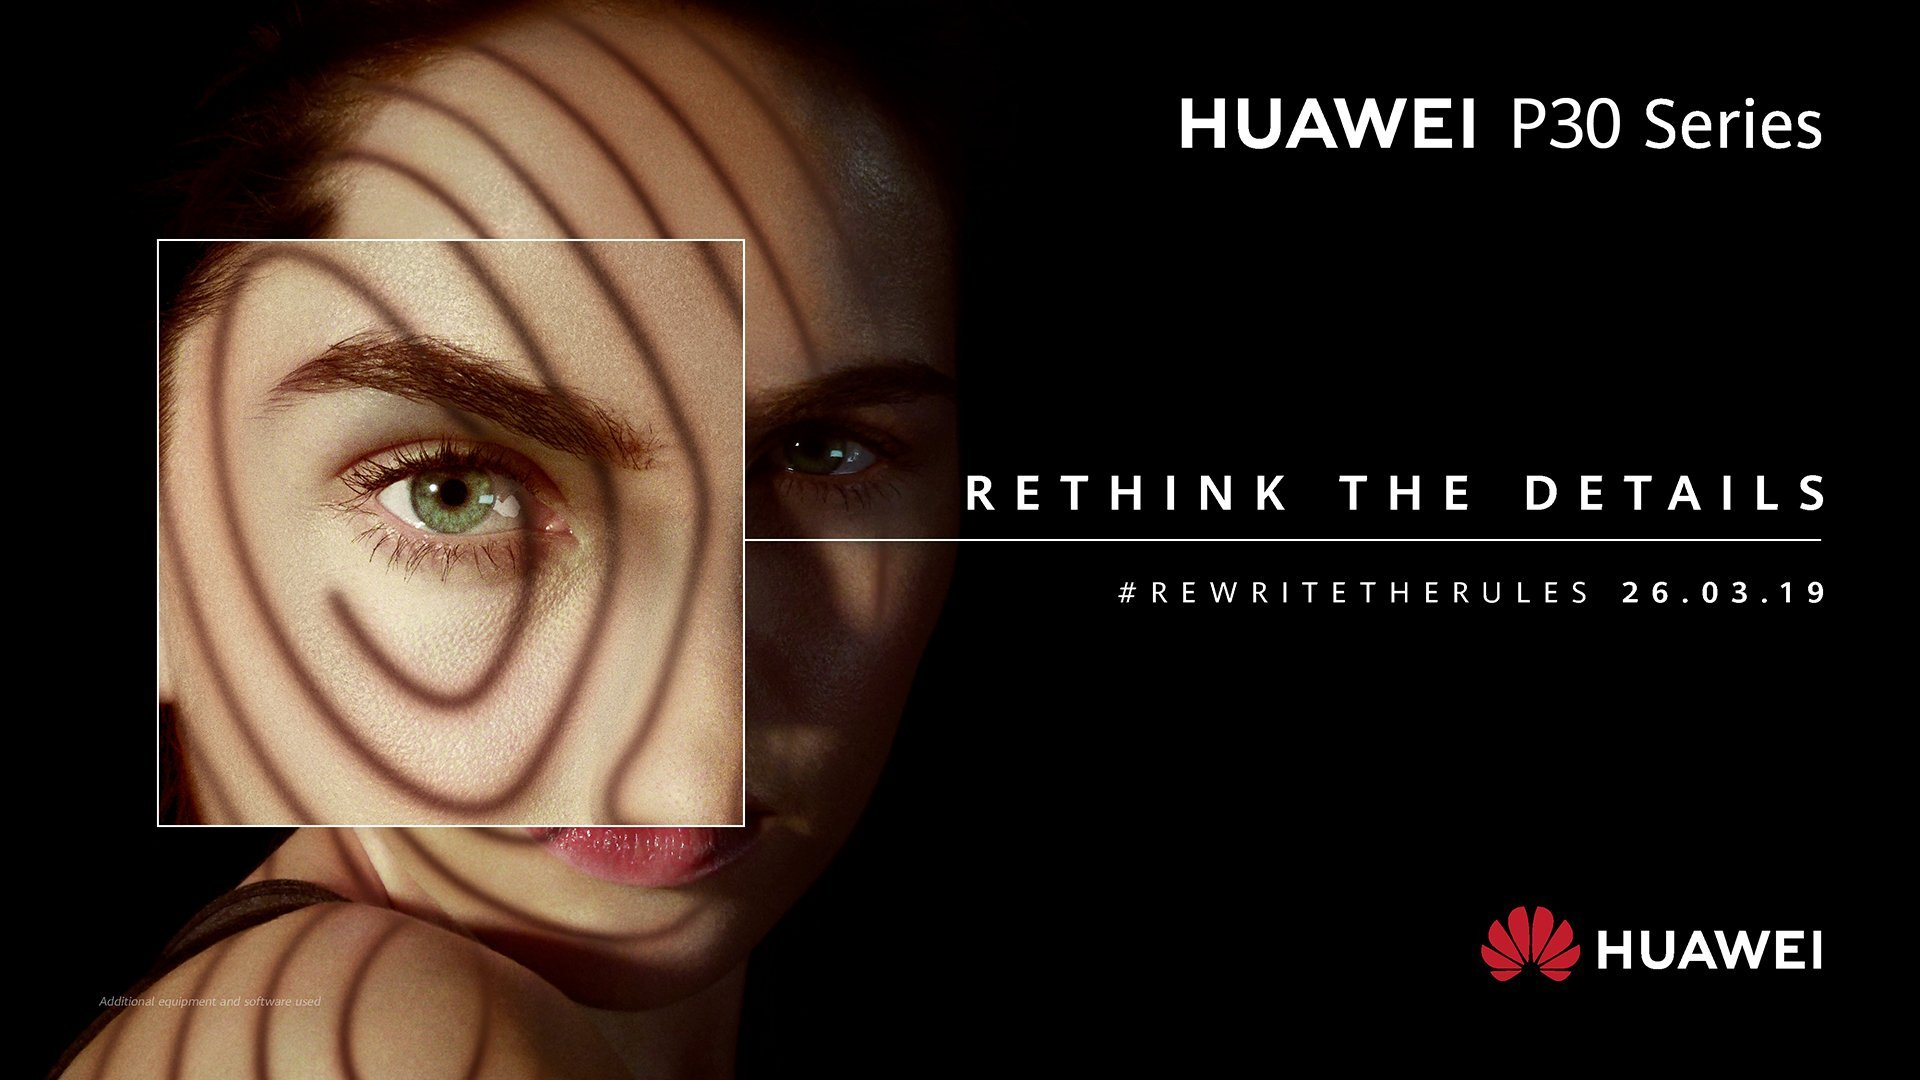 Huawei P30 Series - Rewrite The Rules